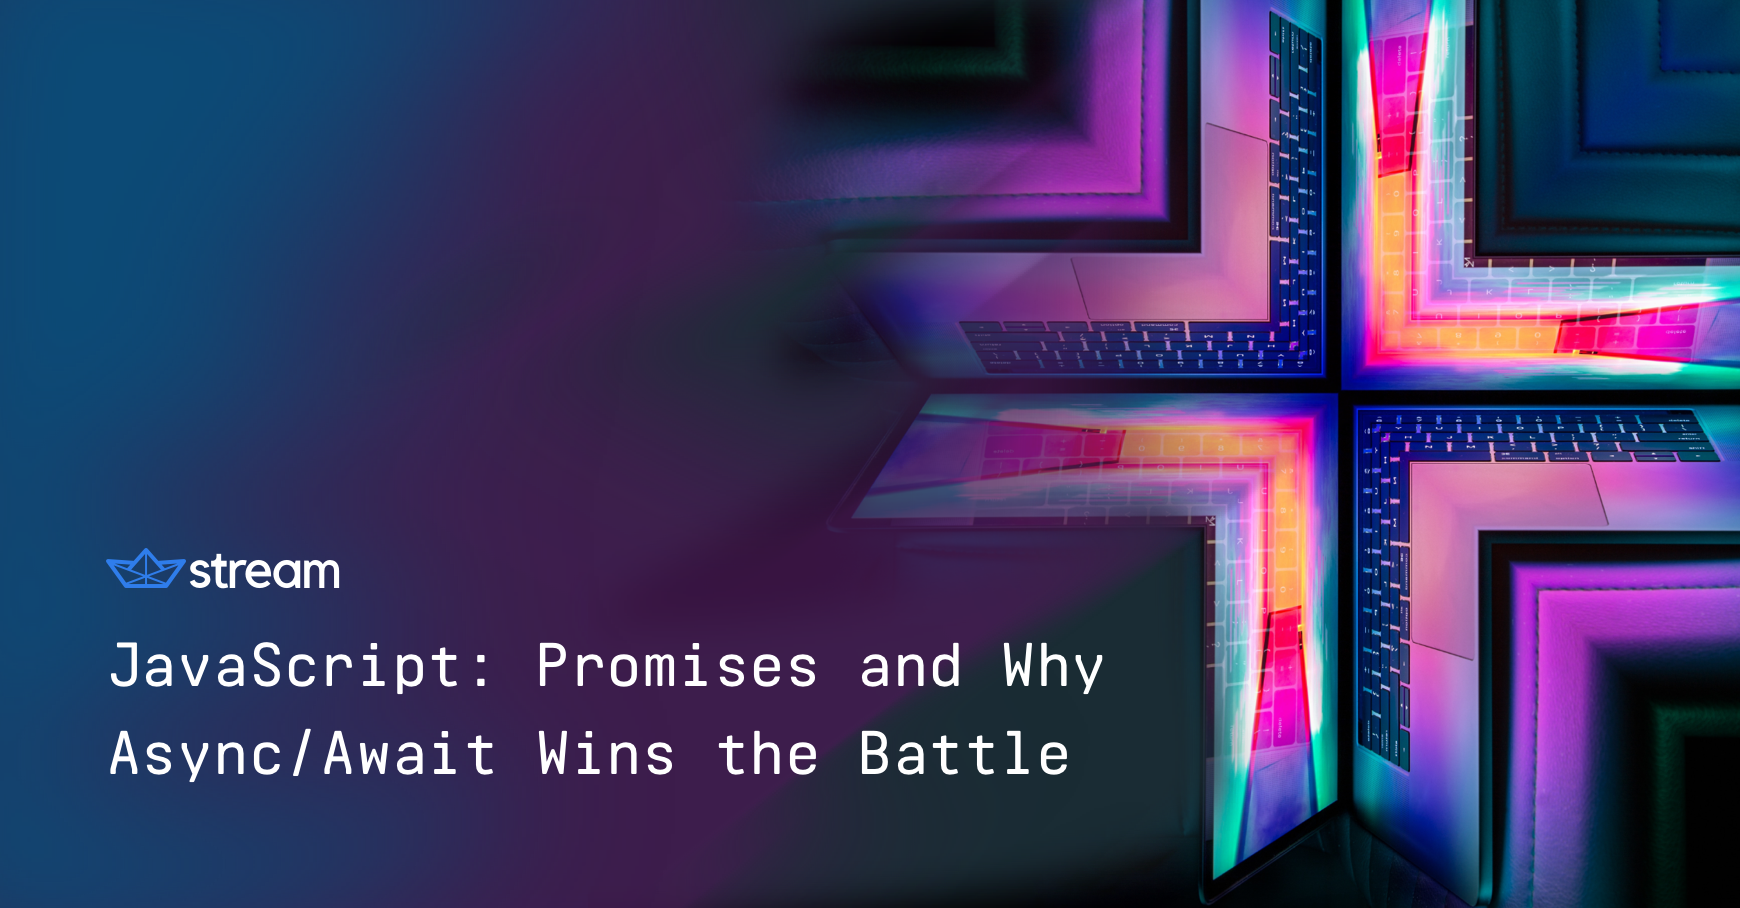 JavaScript: Promises and Why Async/Await Wins the Battle - The